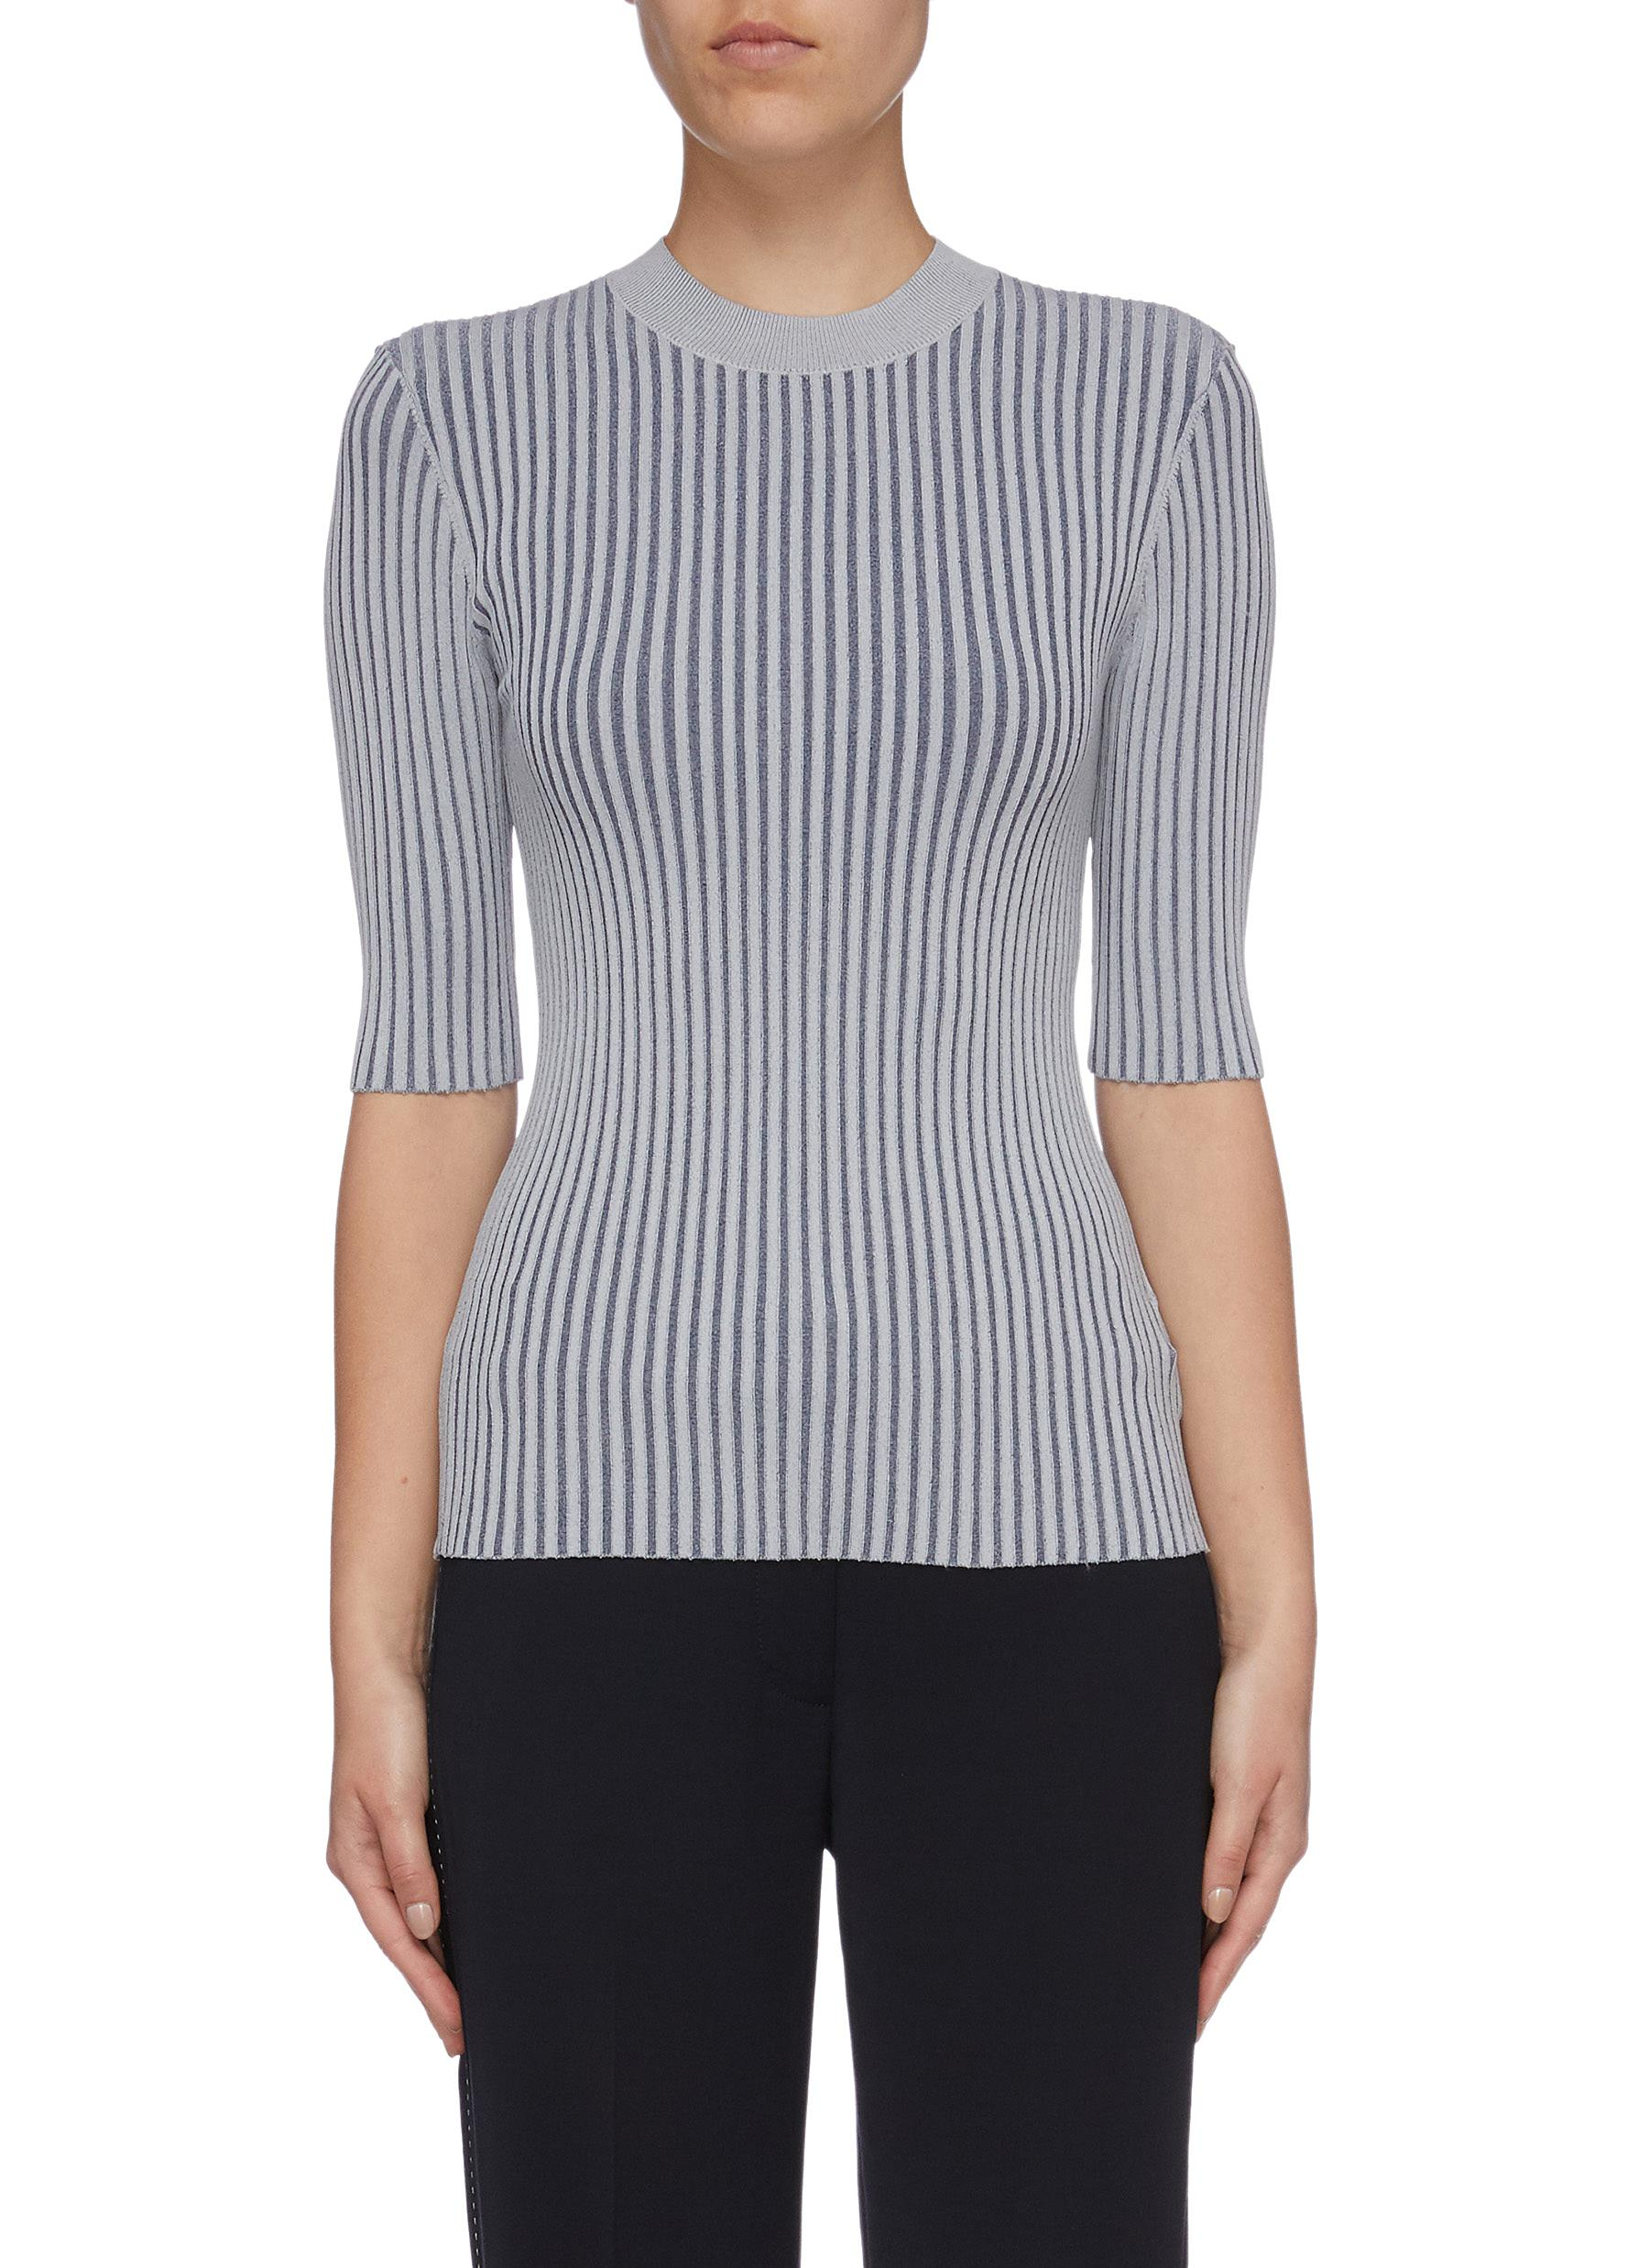 Shadow Stripe rib knit top by Dion Lee